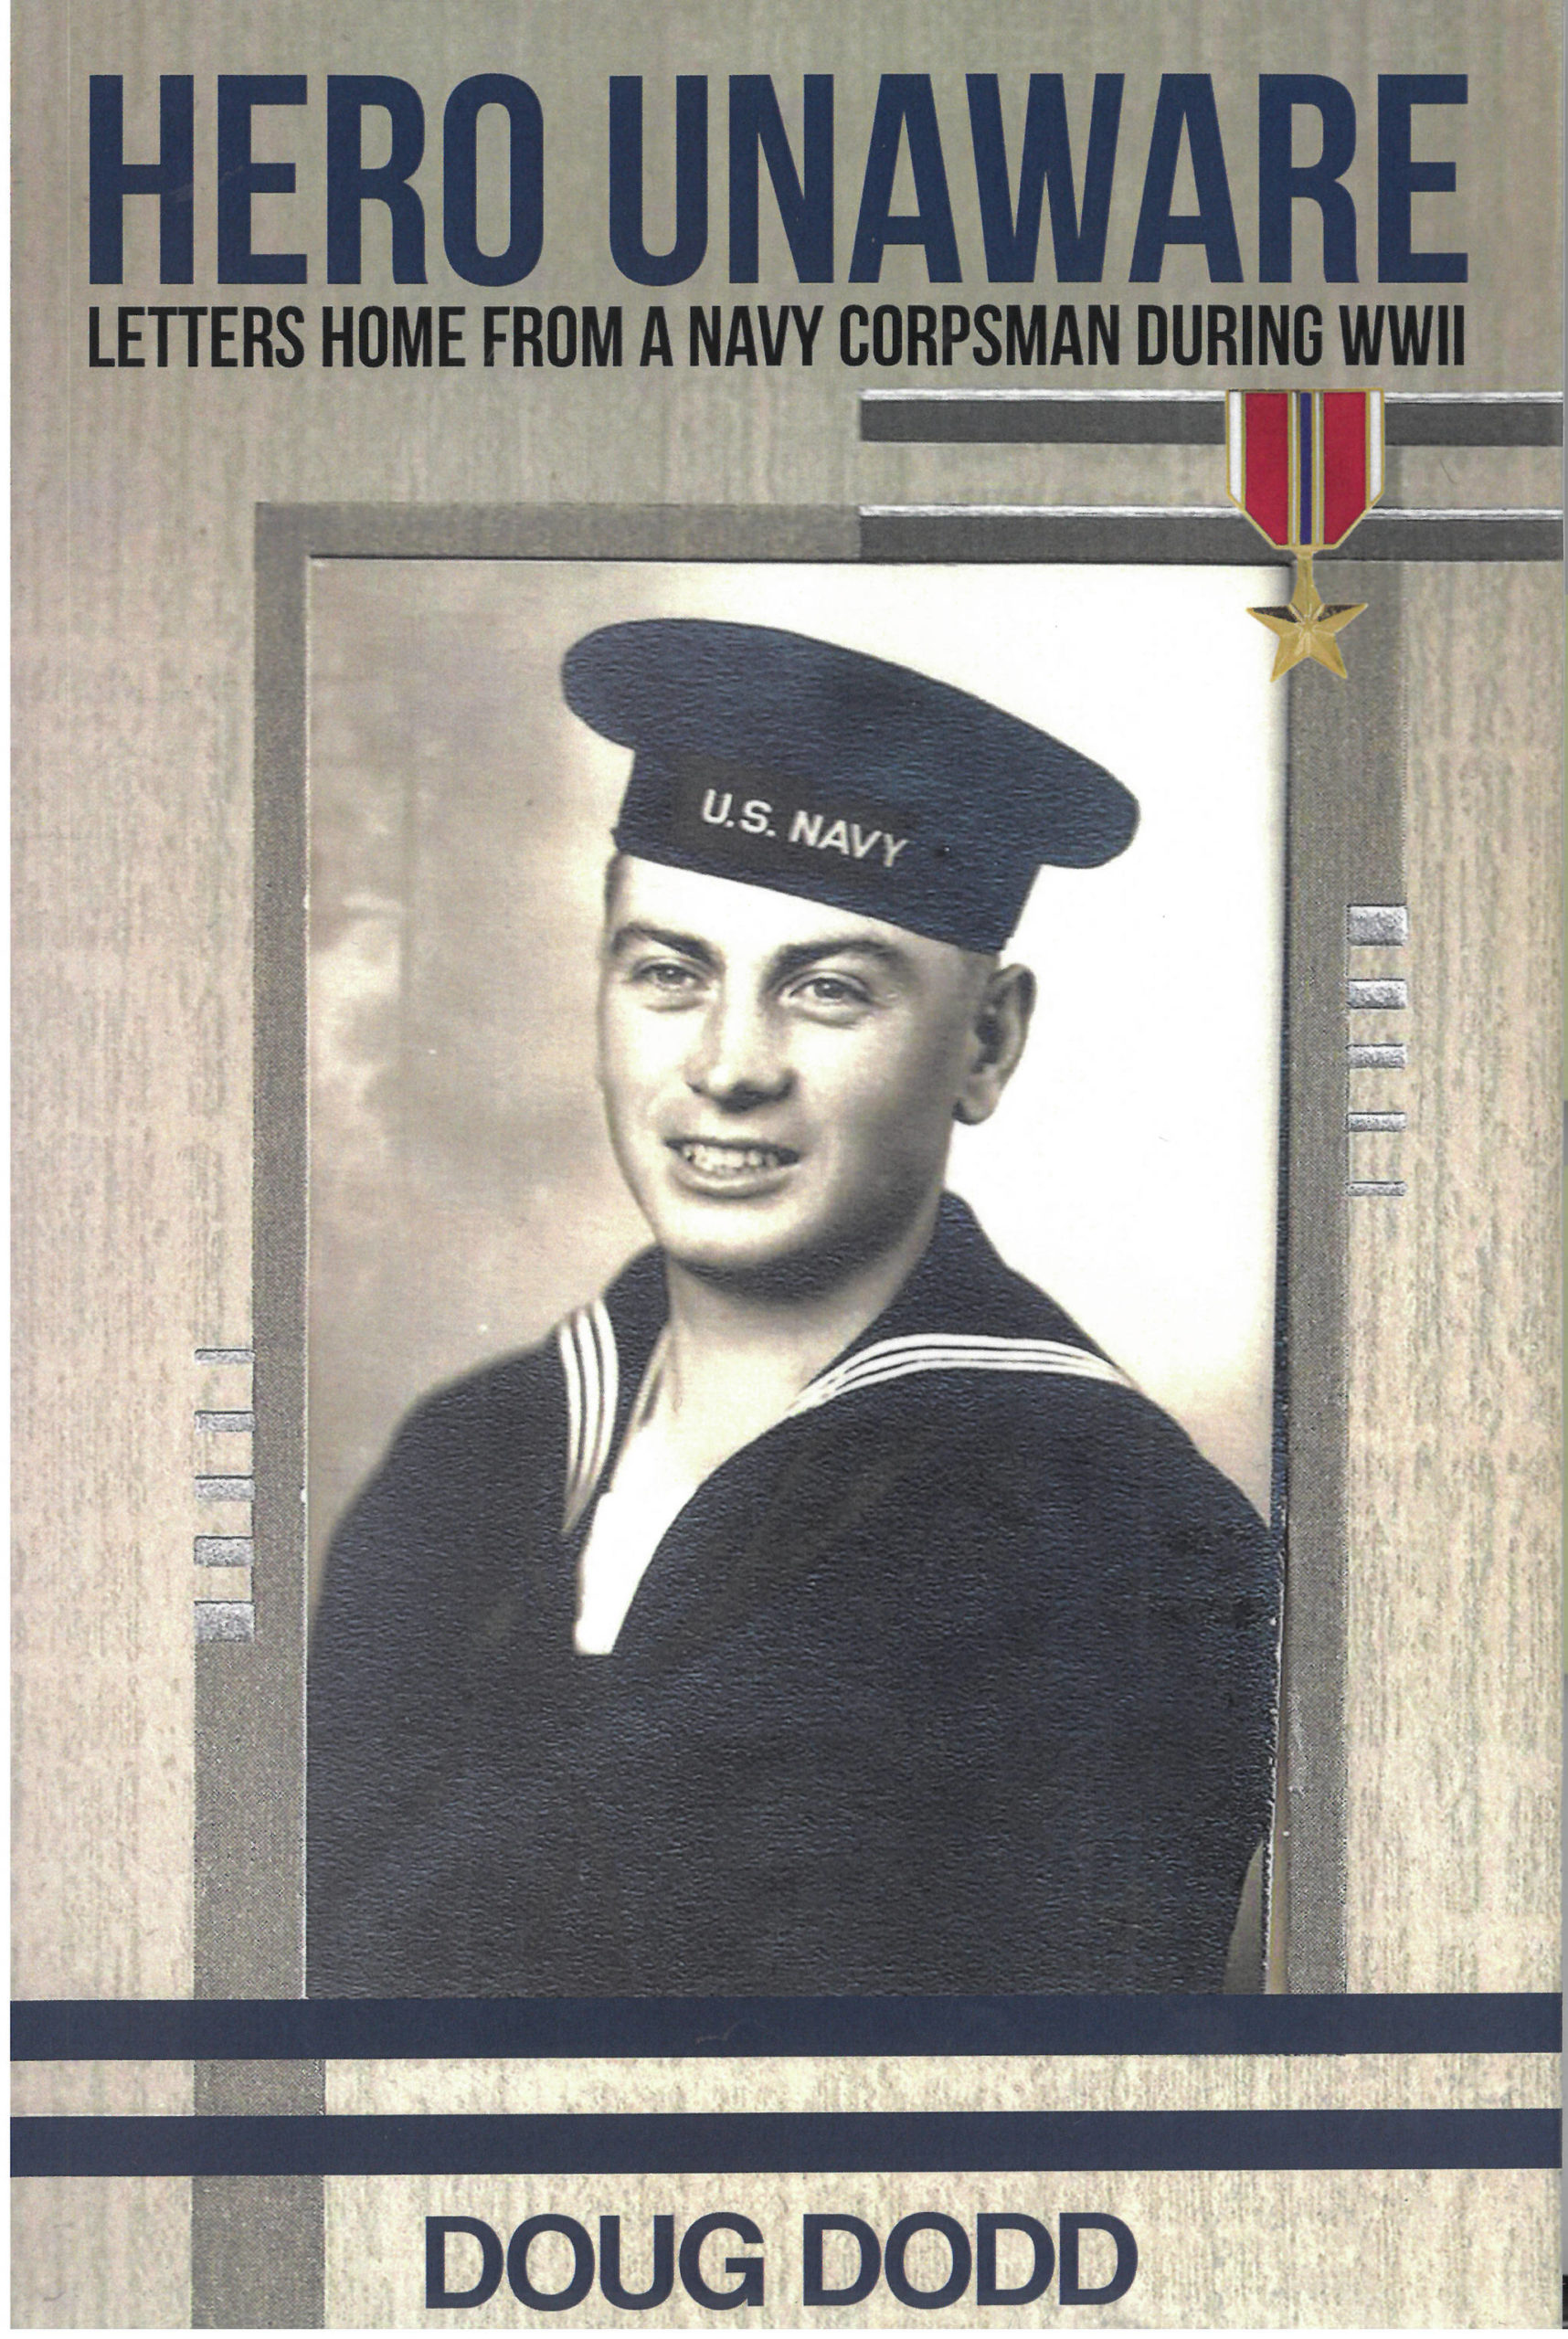 """The cover of Doug Dodd's """"Hero Unaware"""" features a photo of Walter Dodd in his U.S. Navy uniform at the start of World War II."""